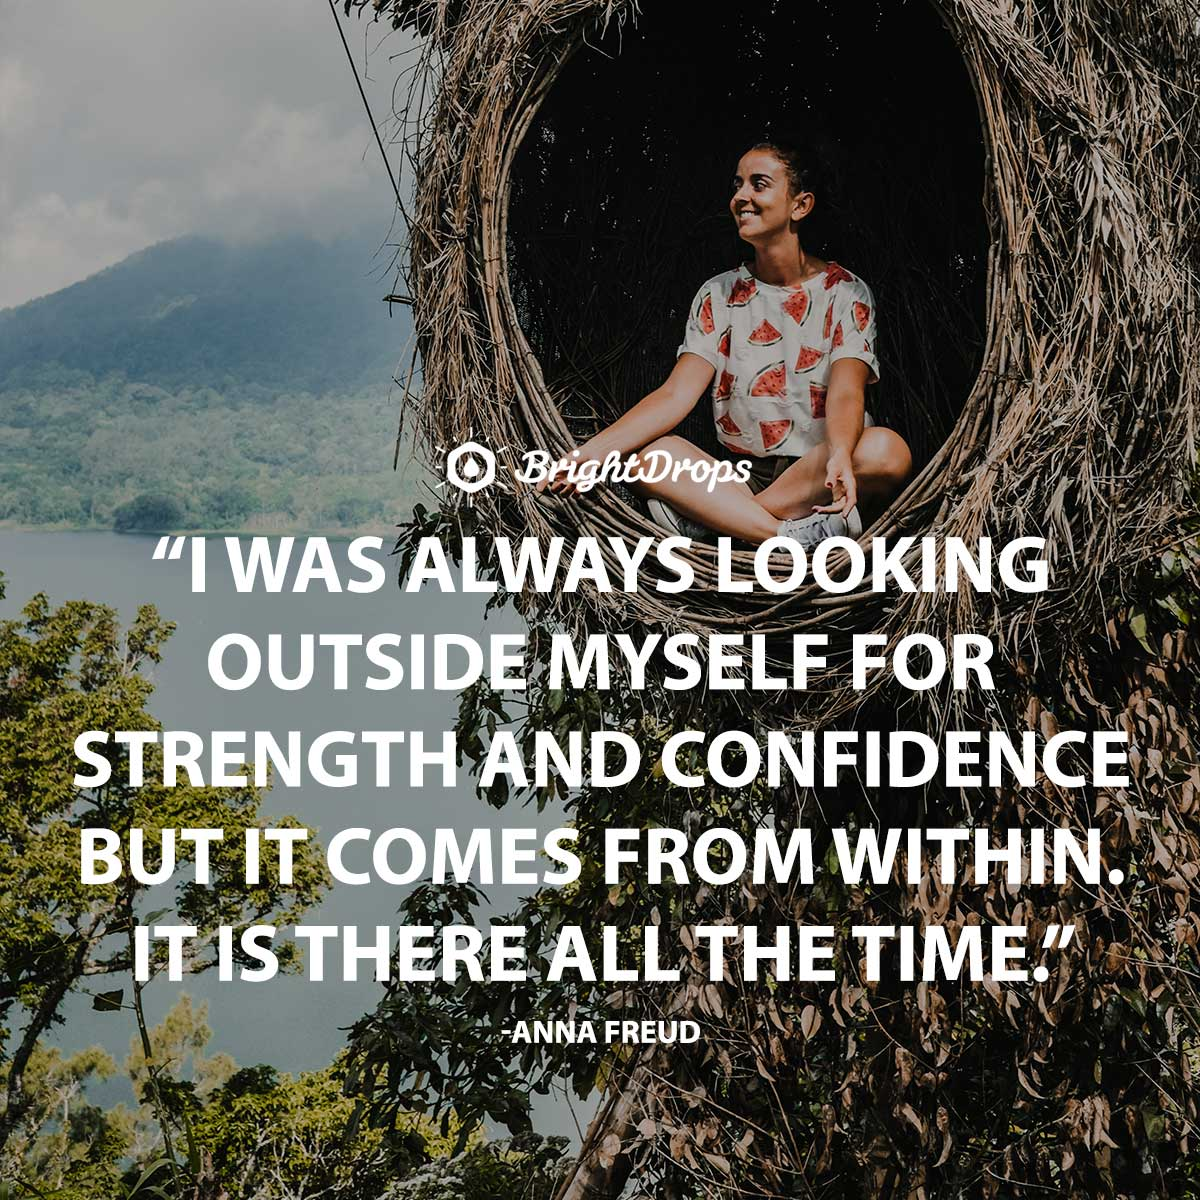 I was always looking outside myself for strength and confidence but it comes from within. It is there all the time. -Anna Freud